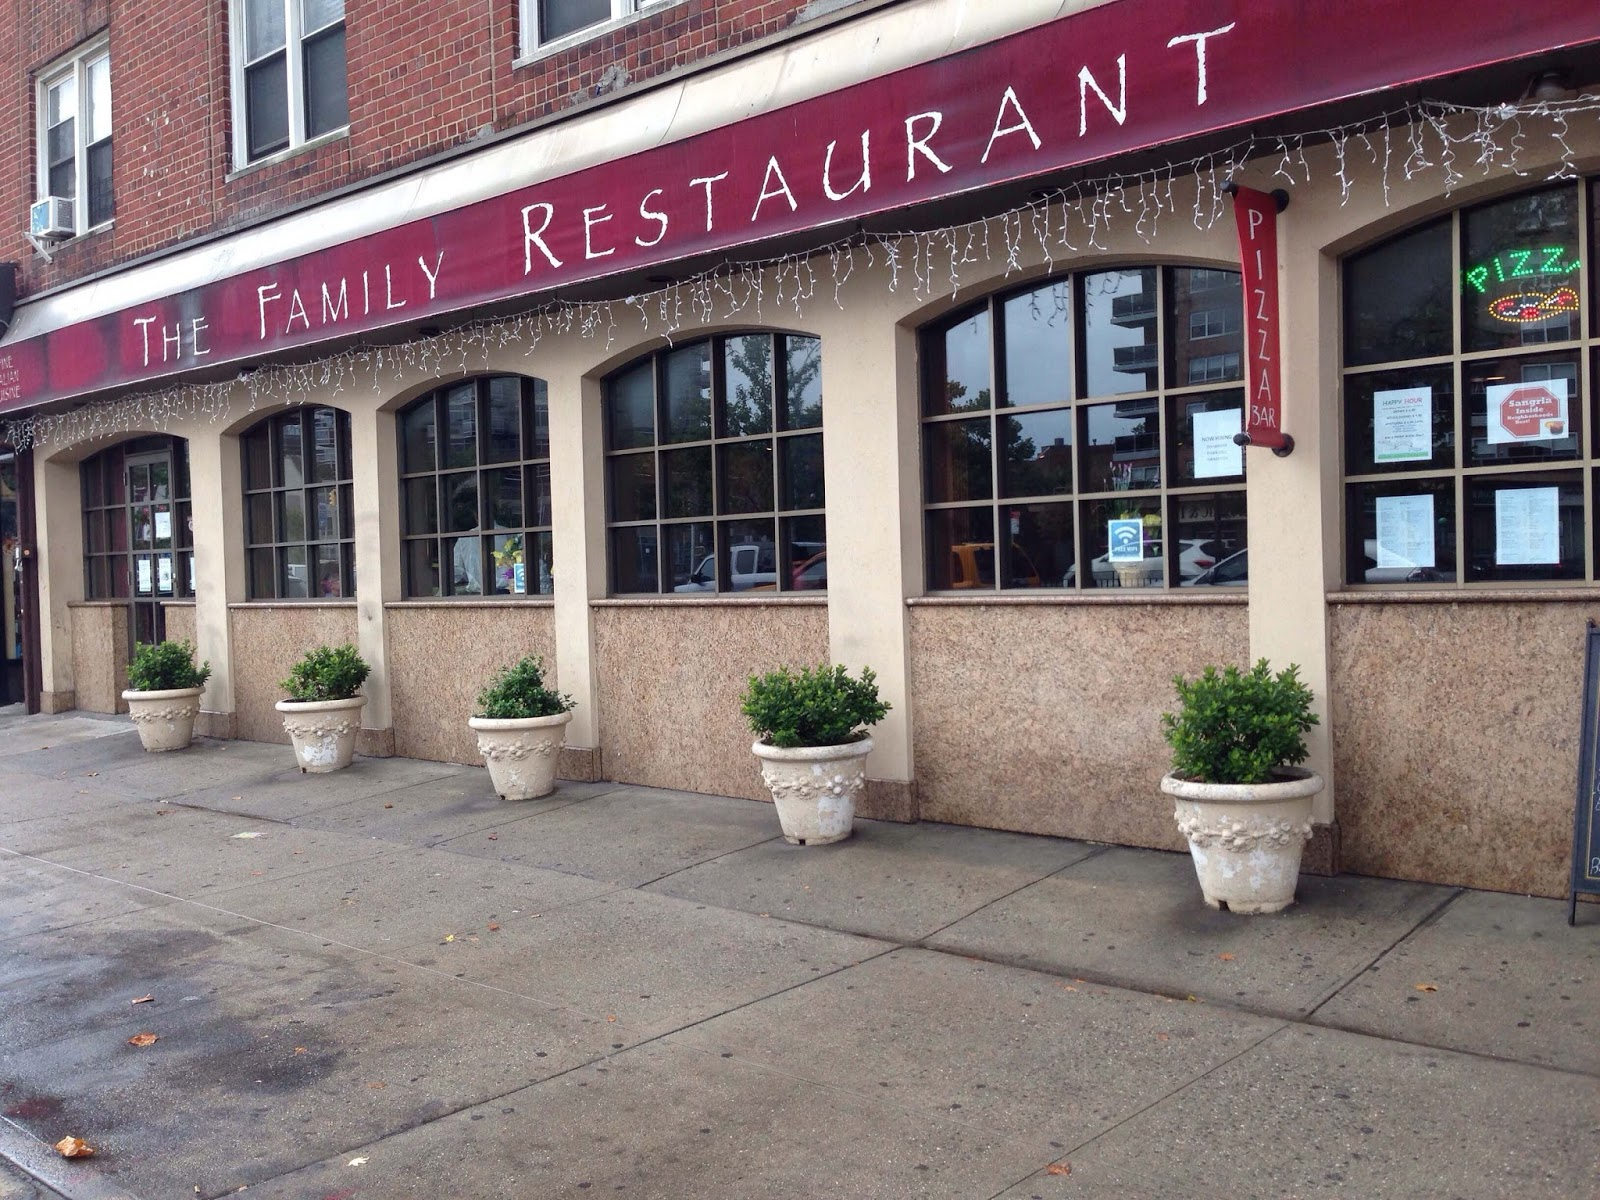 Edge Of The City Family Restaurant Closes